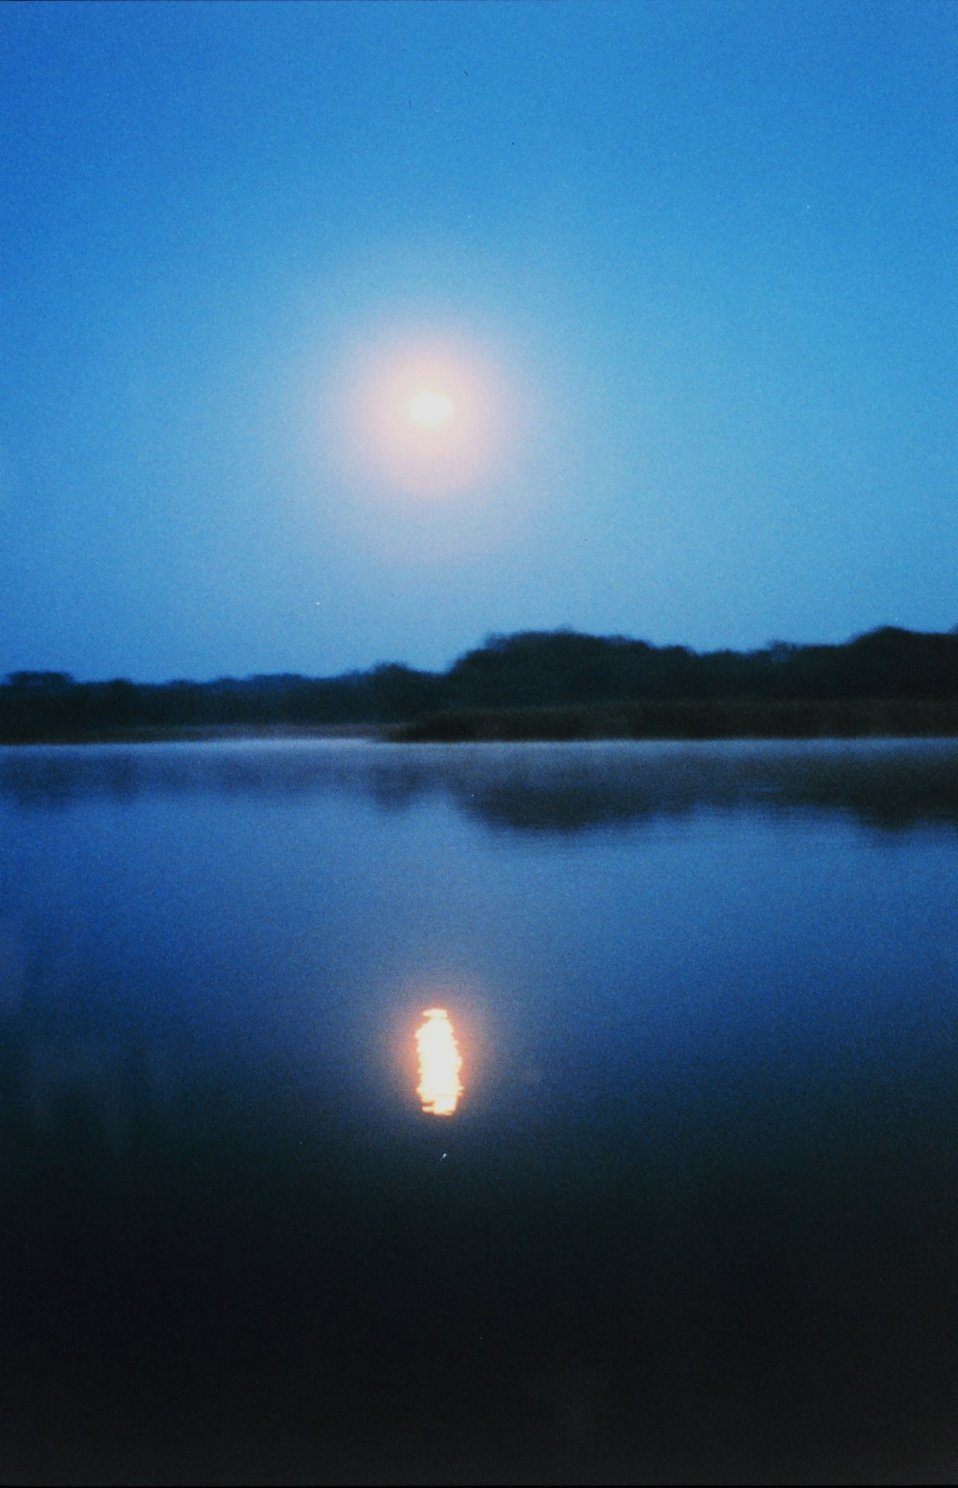 A full moon reflecting off the river - almost at dawn